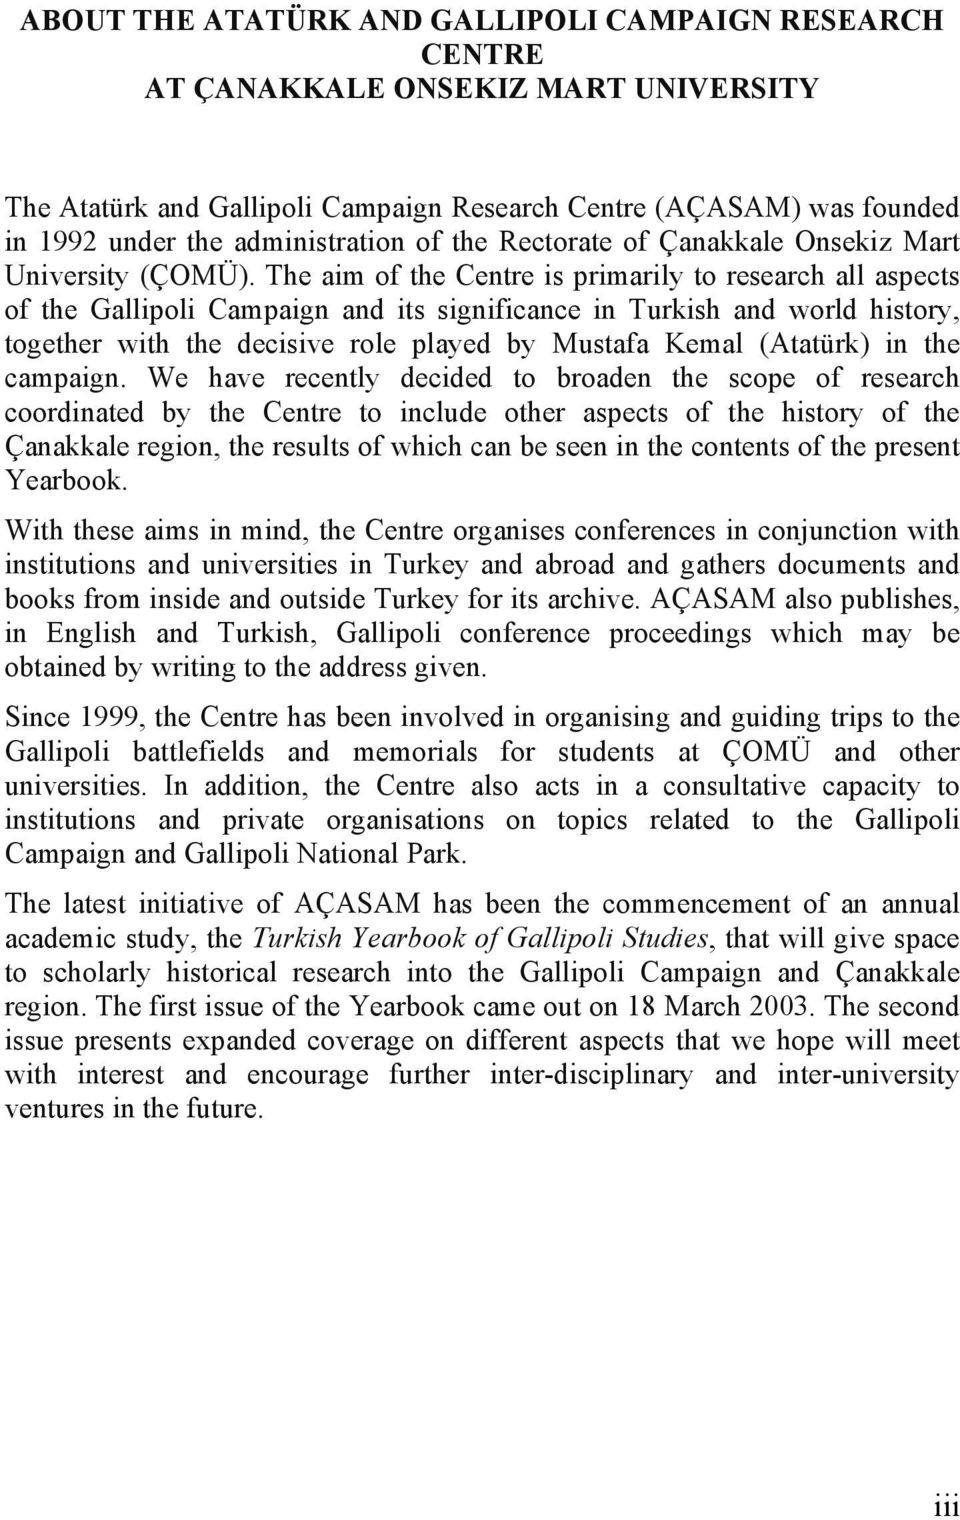 The aim of the Centre is primarily to research all aspects of the Gallipoli Campaign and its significance in Turkish and world history, together with the decisive role played by Mustafa Kemal